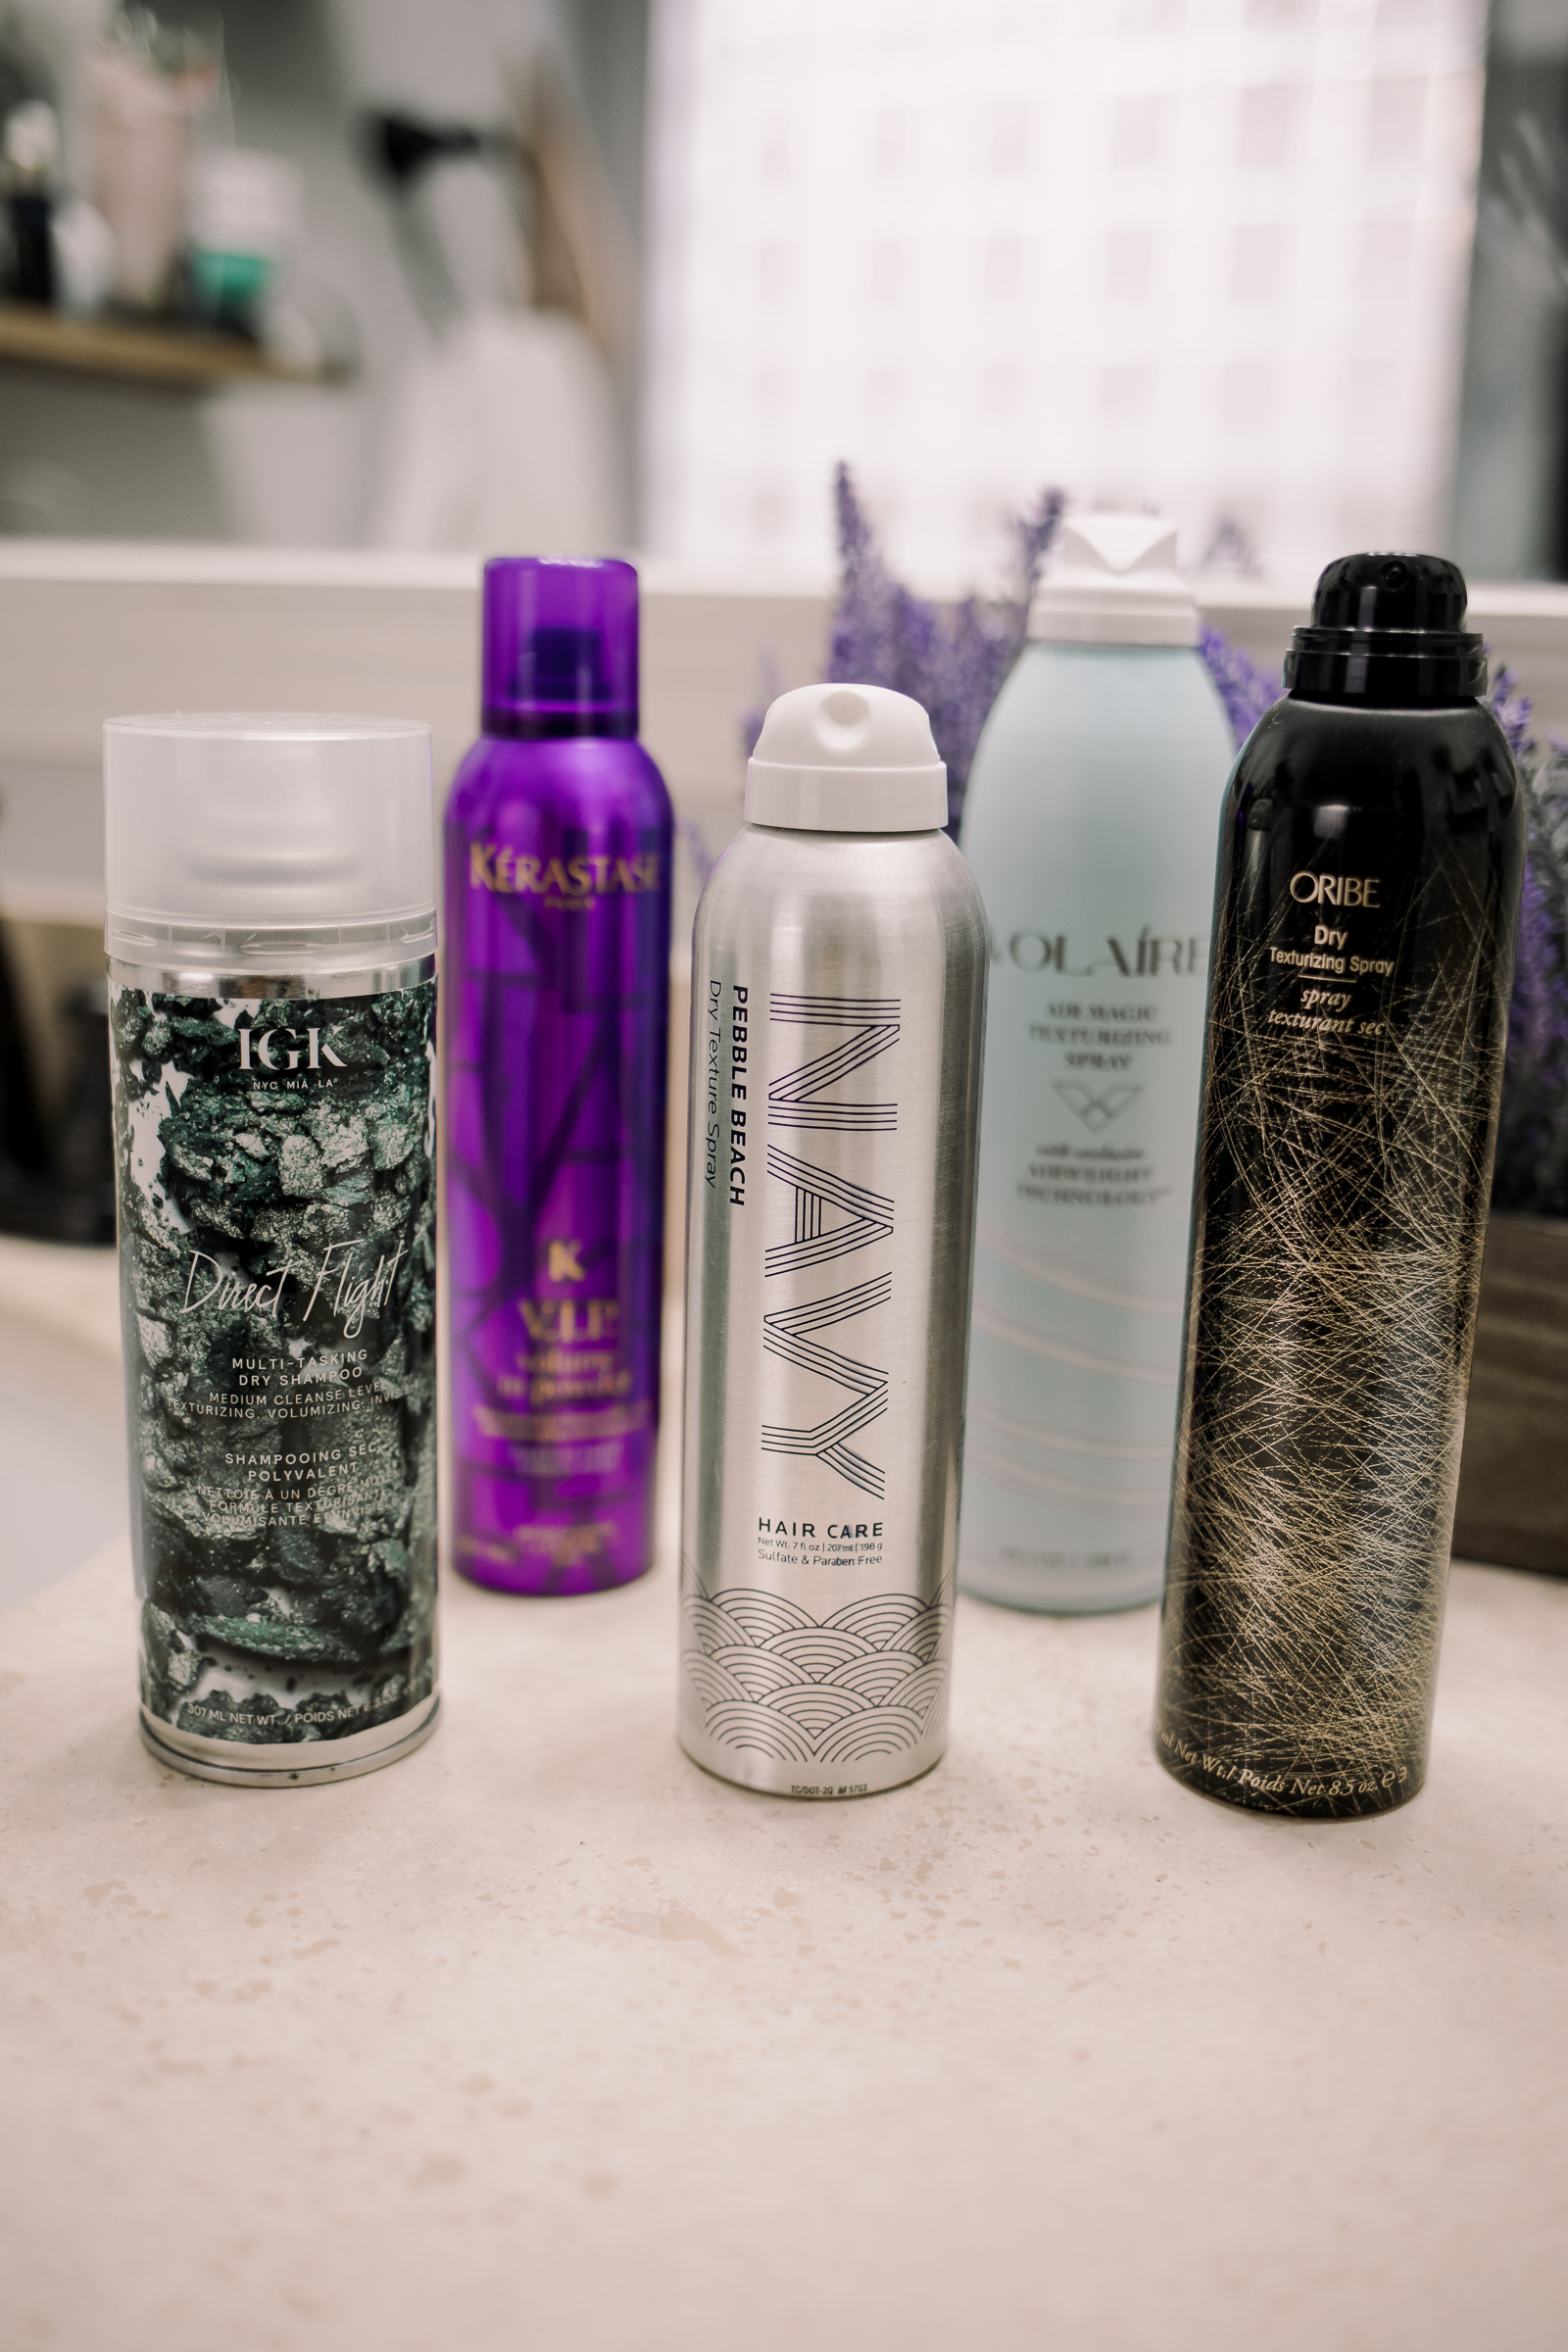 Houston beauty blogger Uptown with Elly Brown shares her TOP 5 Hair Texture Sprays and why she loves each one of them.